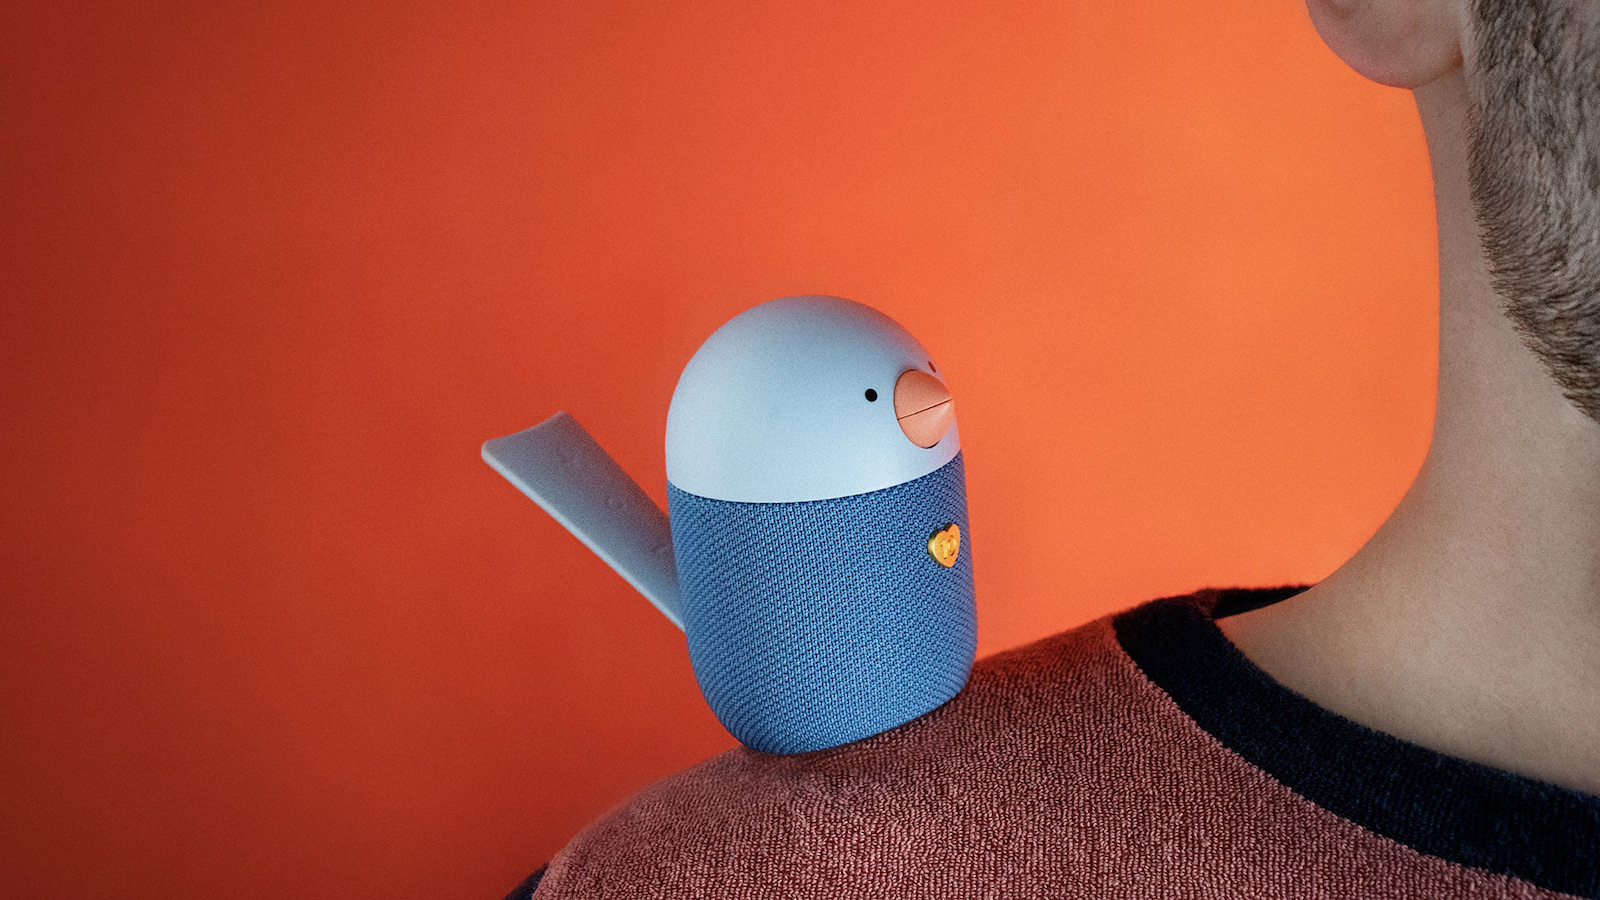 Libratone BIRD small Bluetooth speaker has interactive touch controls